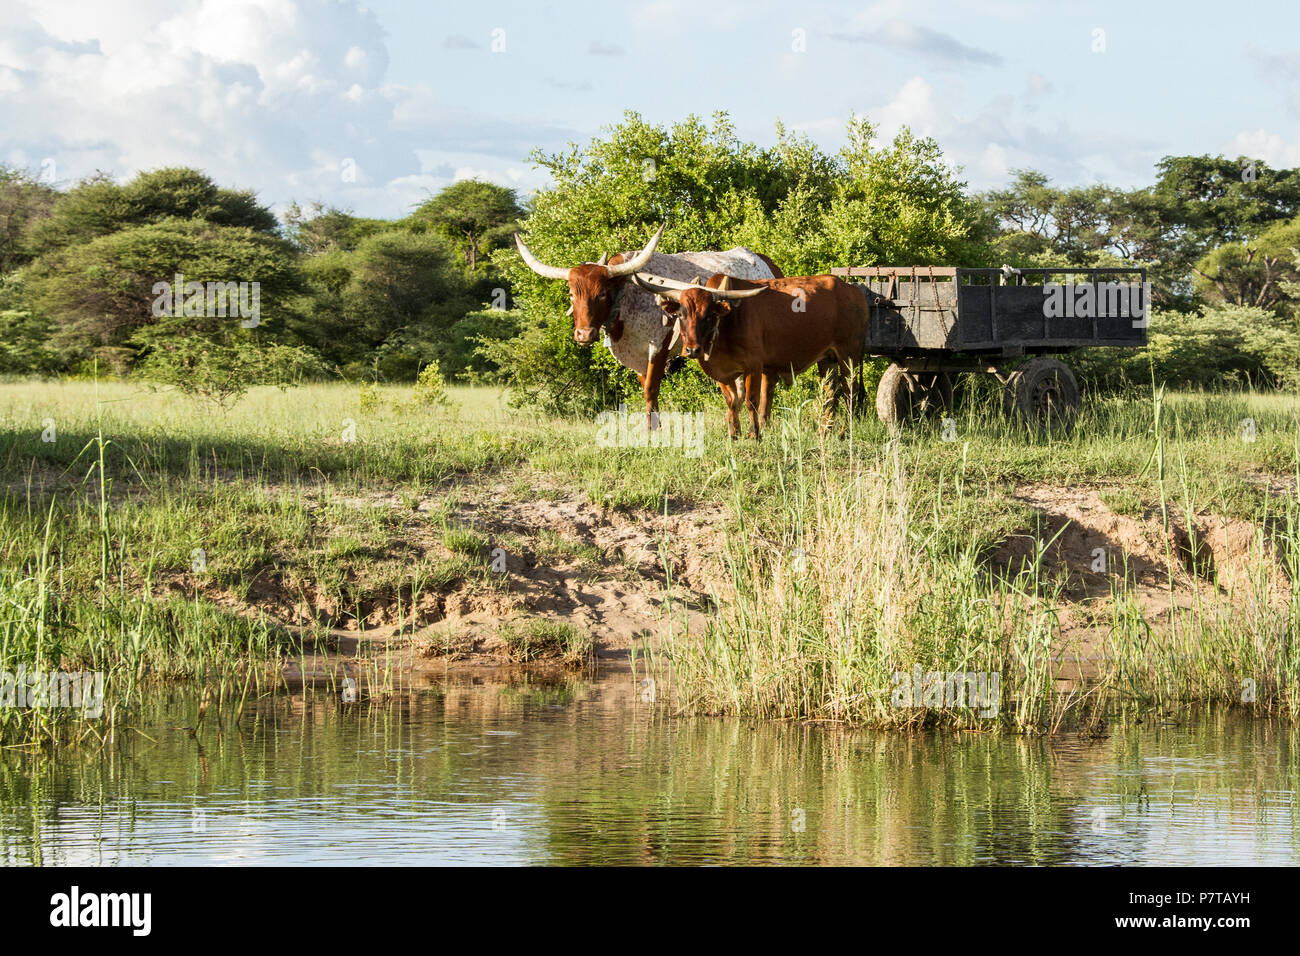 Oxen pulling a cart on the banks of the Kavango river between Namibia and Angola. - Stock Image